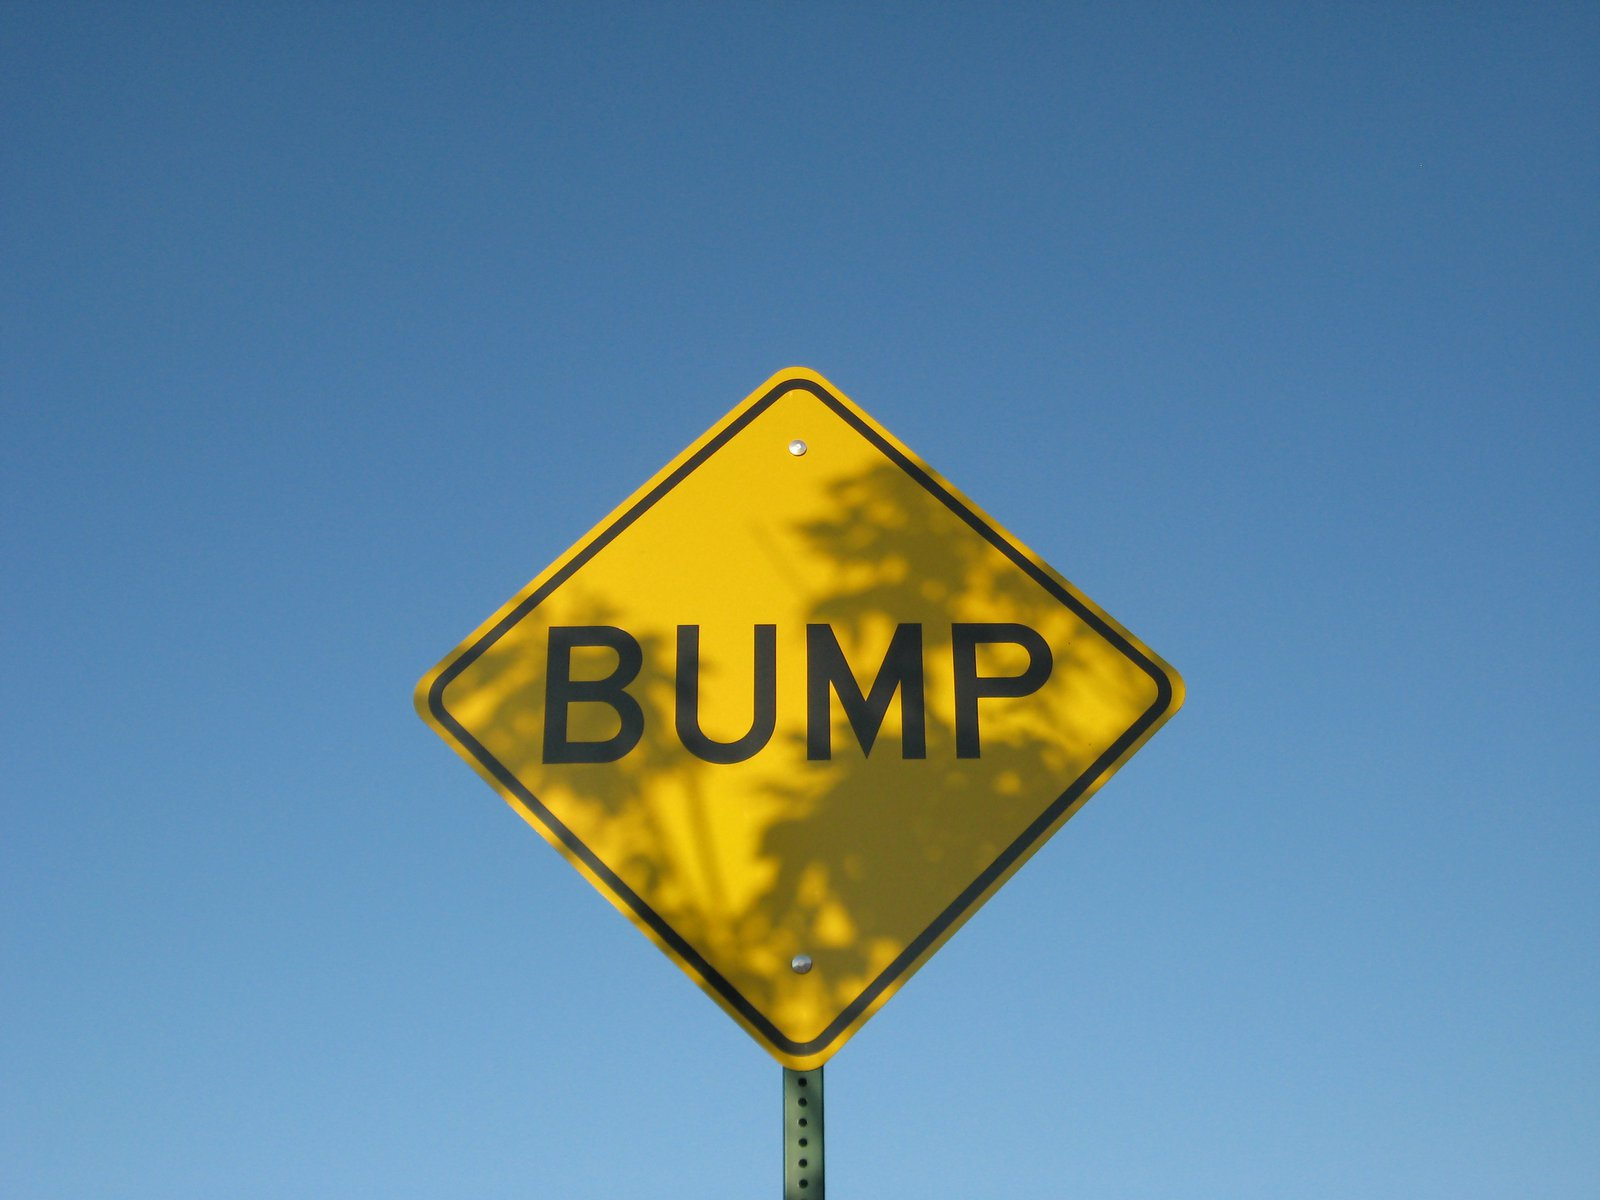 Bupm sign